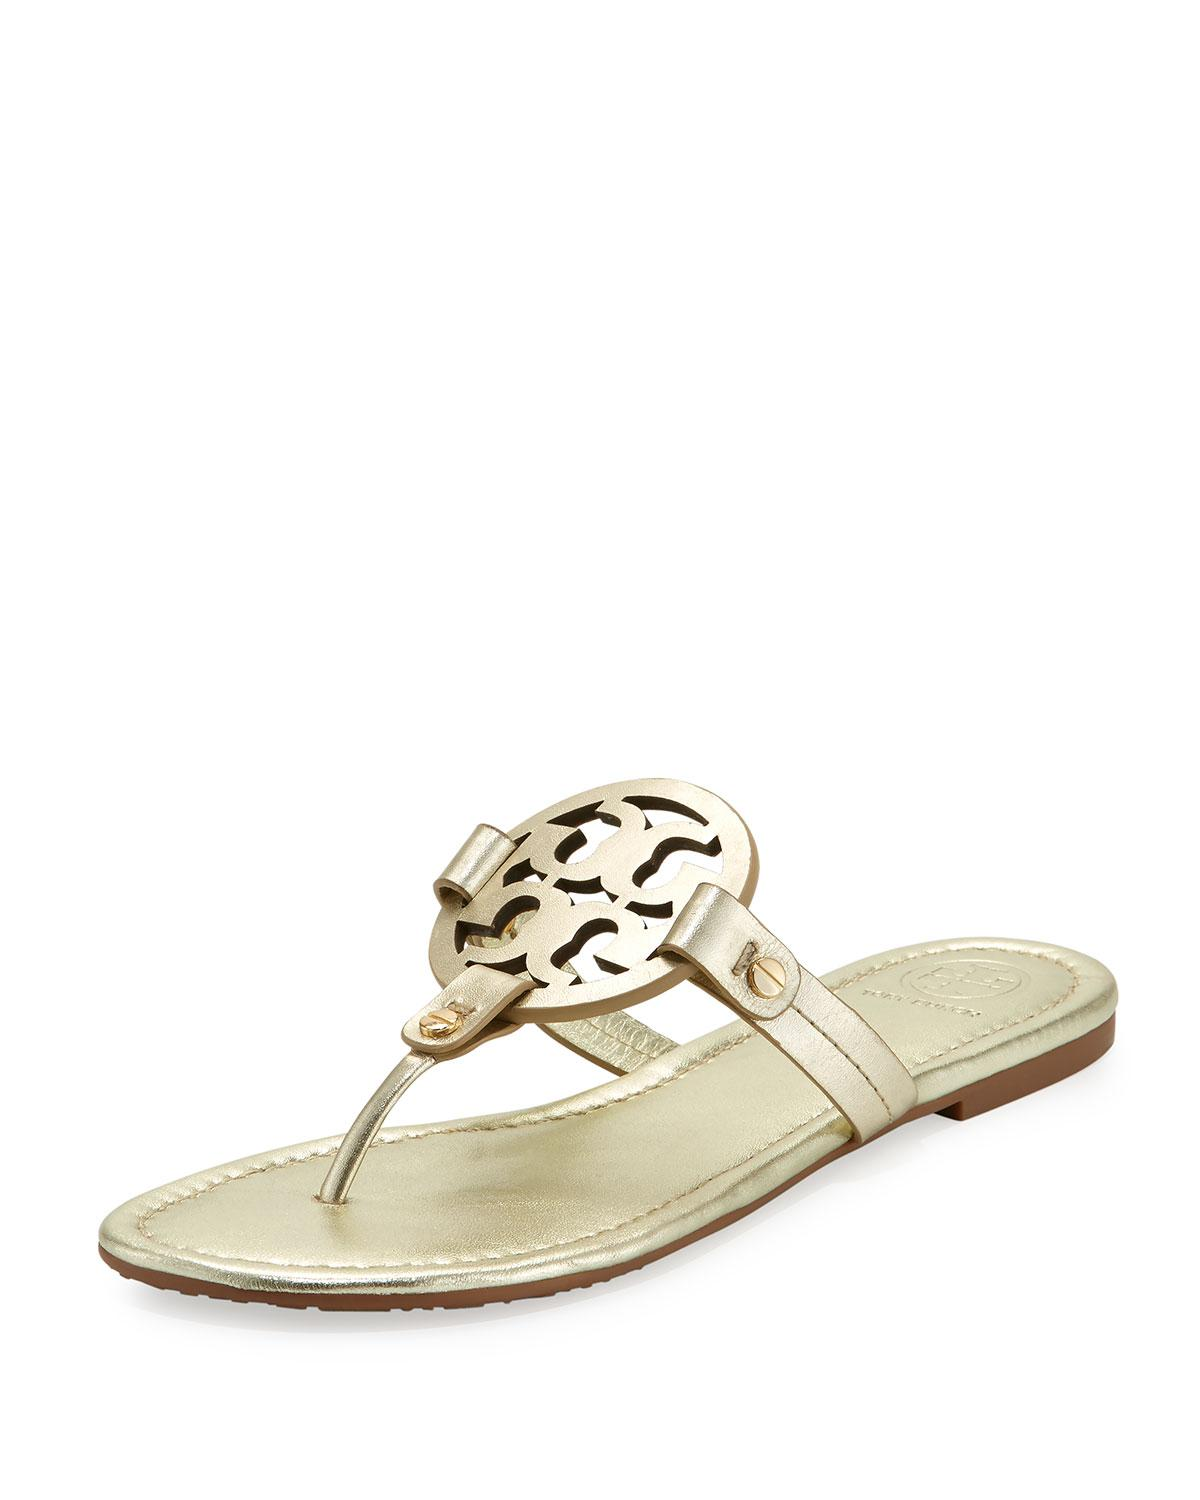 9f3df2d868a7ae Lyst - Tory Burch Miller Leather Logo Sandal in Metallic - Save 15%